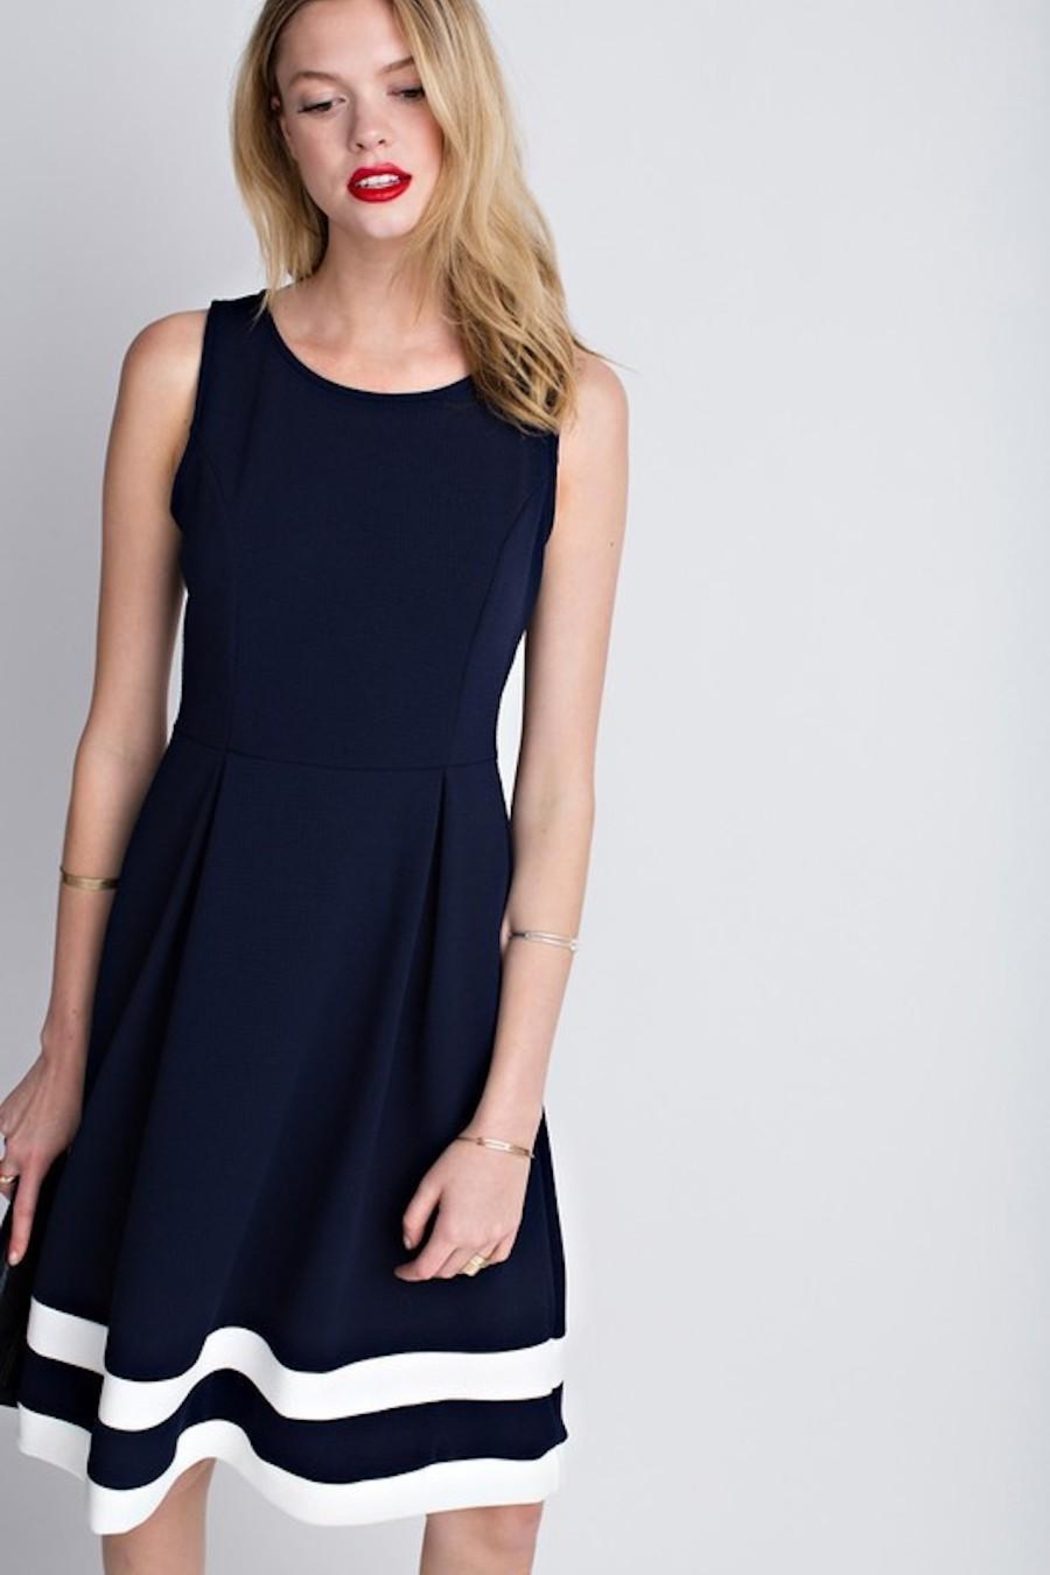 12pm by Mon Ami Classic Navy Dress - Front Full Image